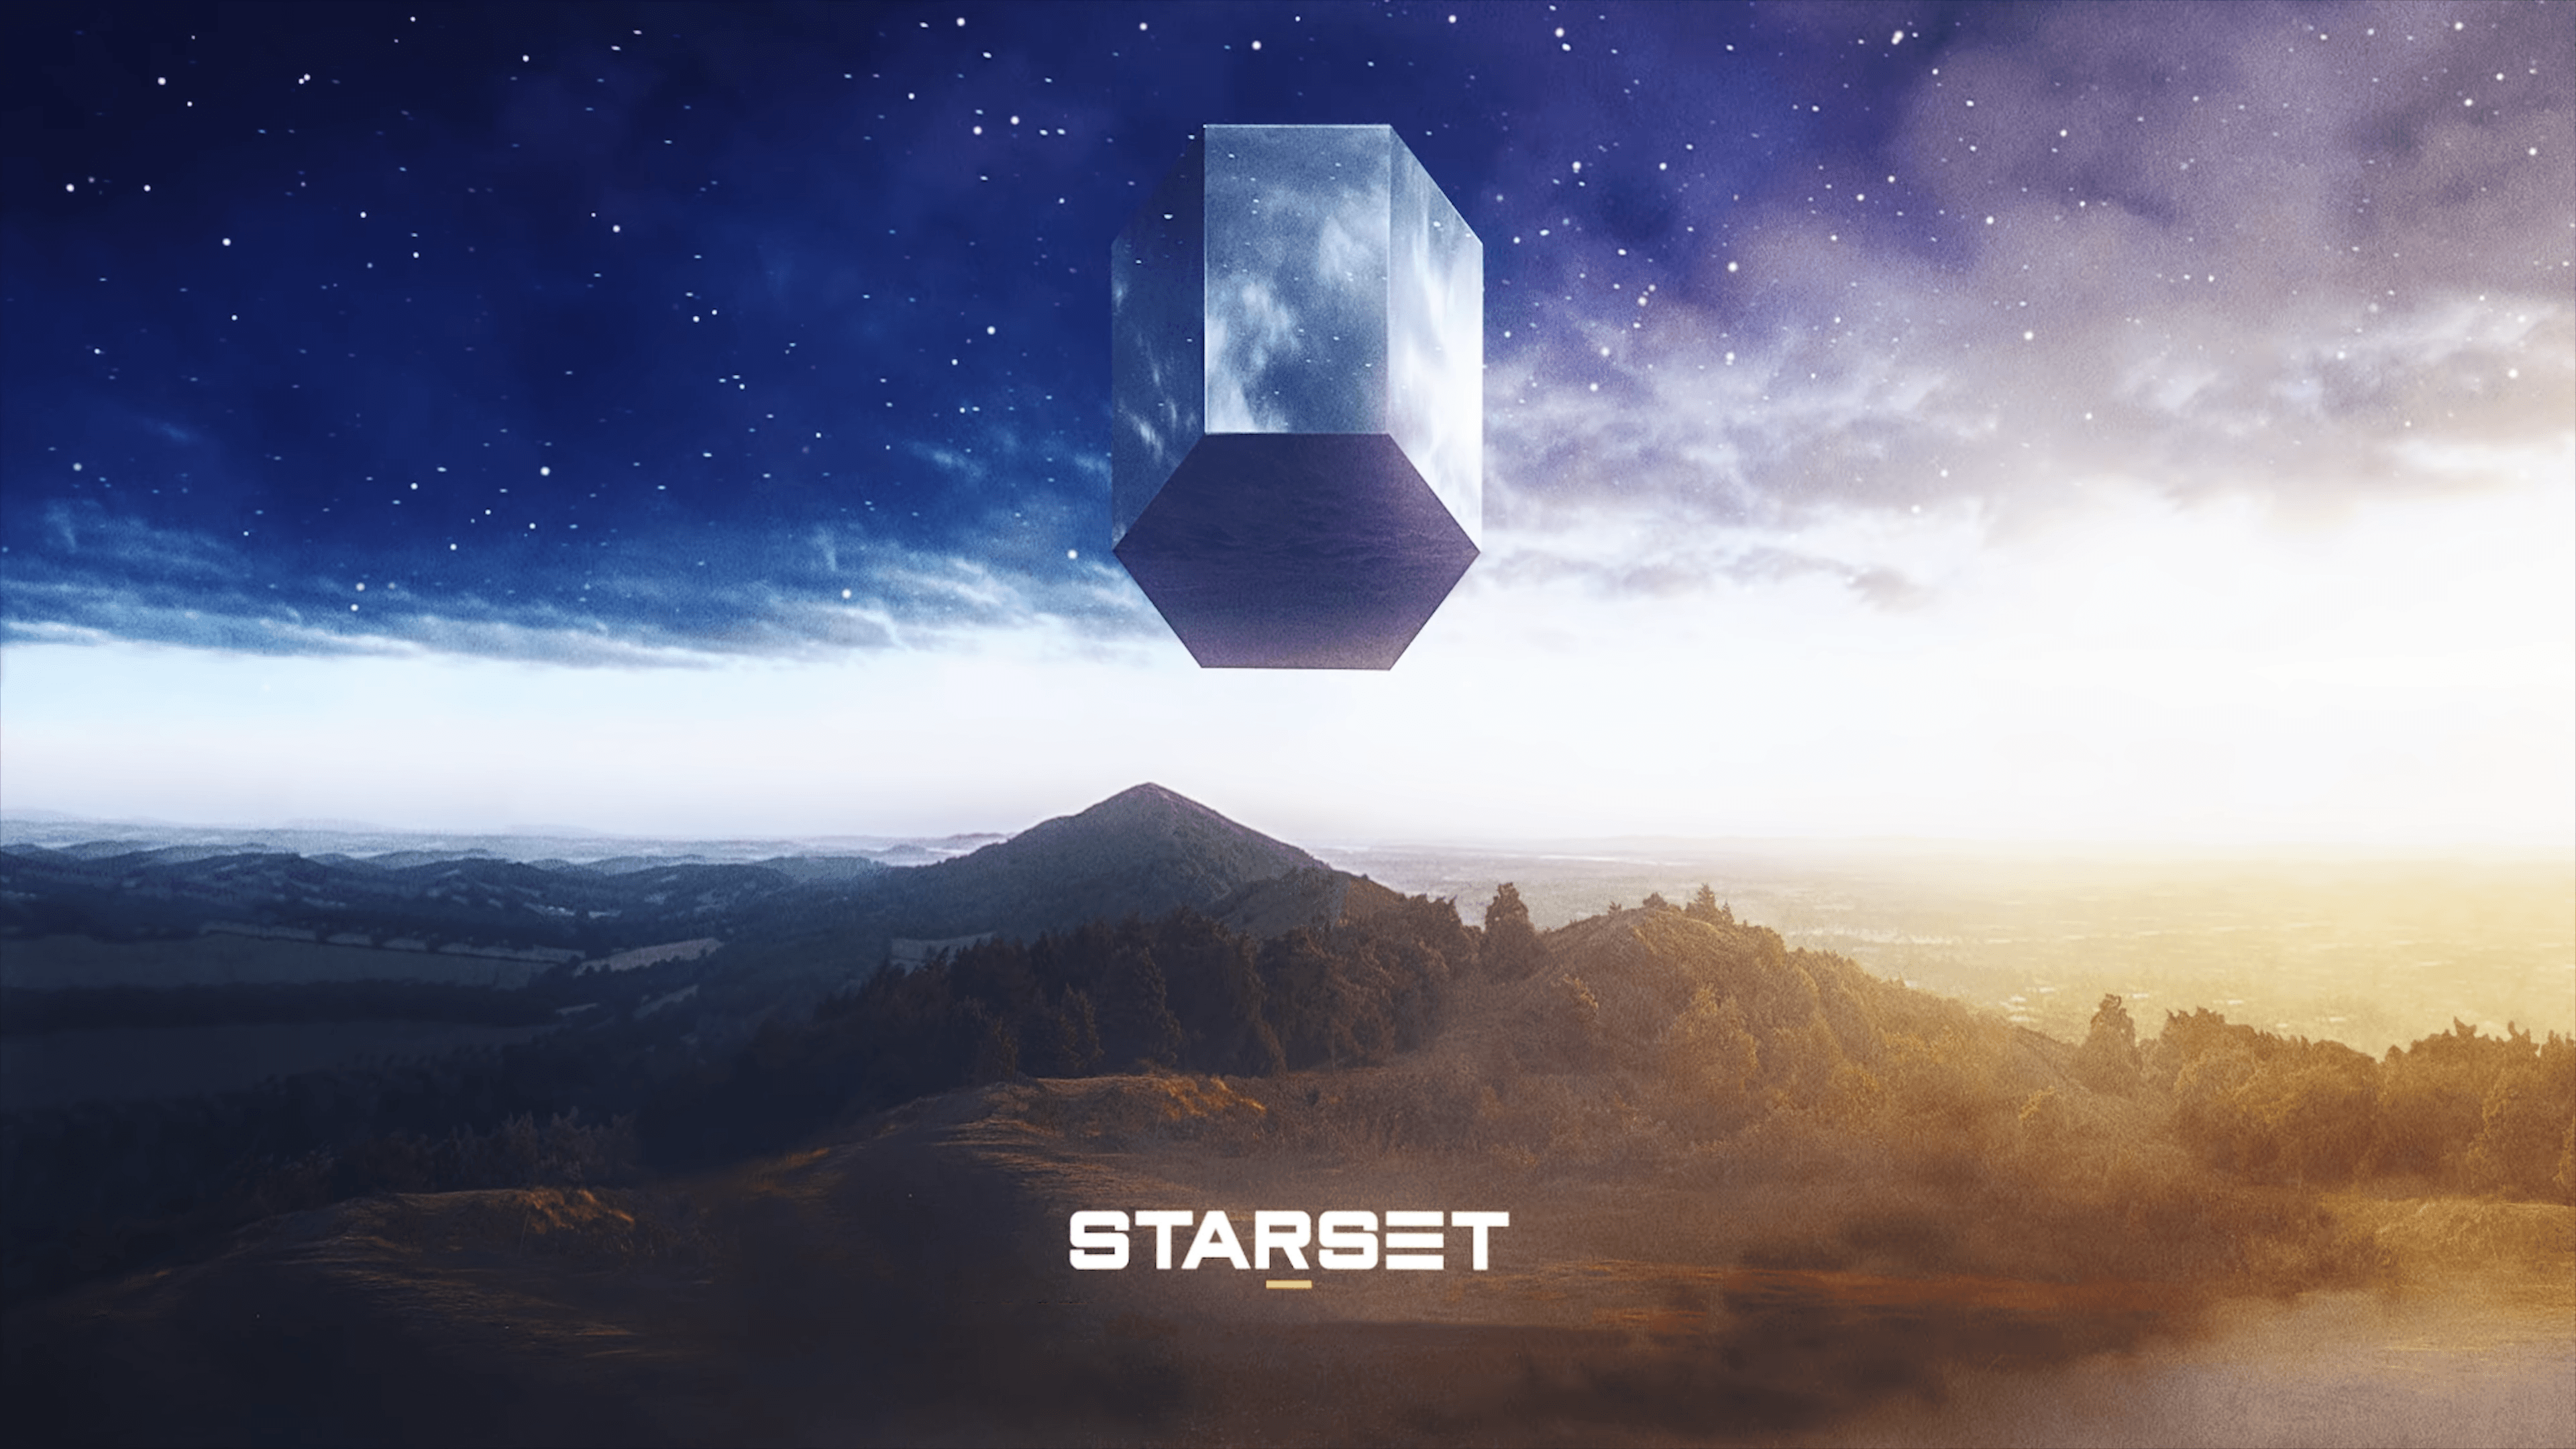 3840x2160 Starset wallpaper (love you to death) - Album on Imgur